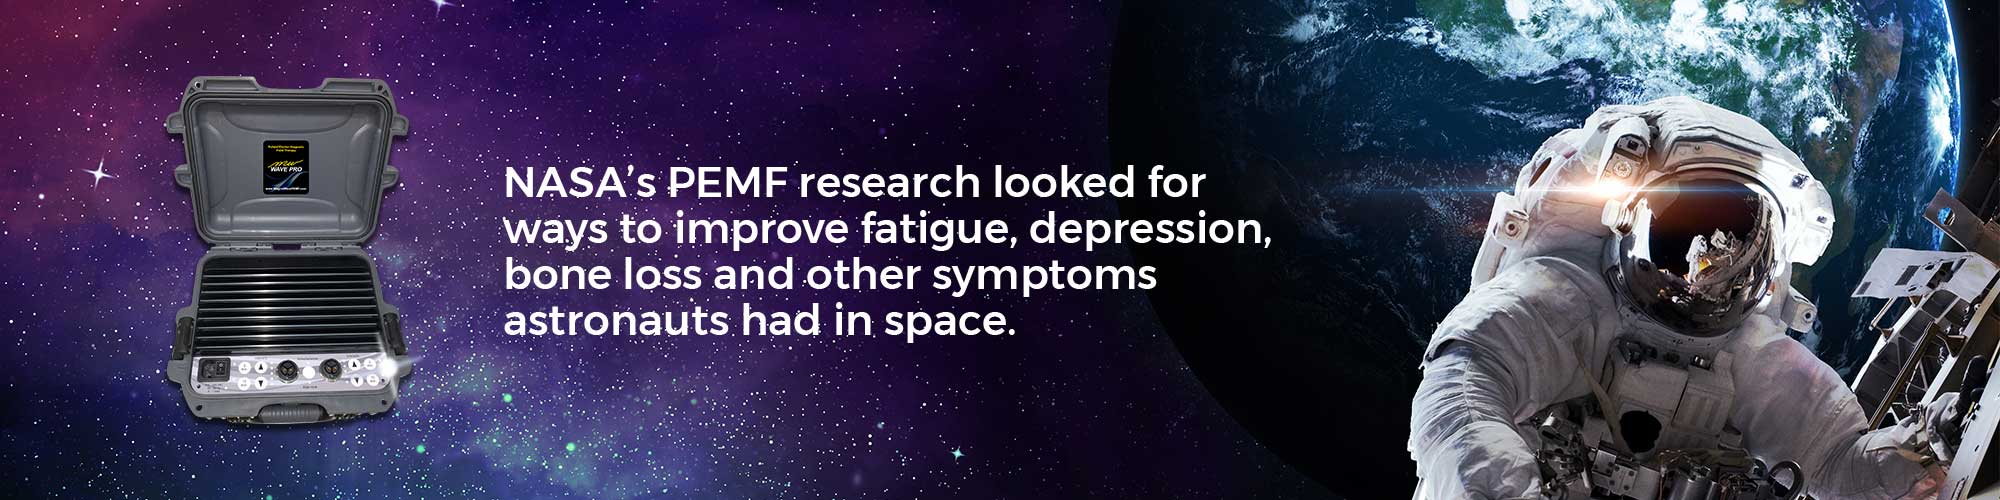 NASA's PEMF research looked for ways to improve fatigue, depression, bone loss and other symptoms astronauts had in space.